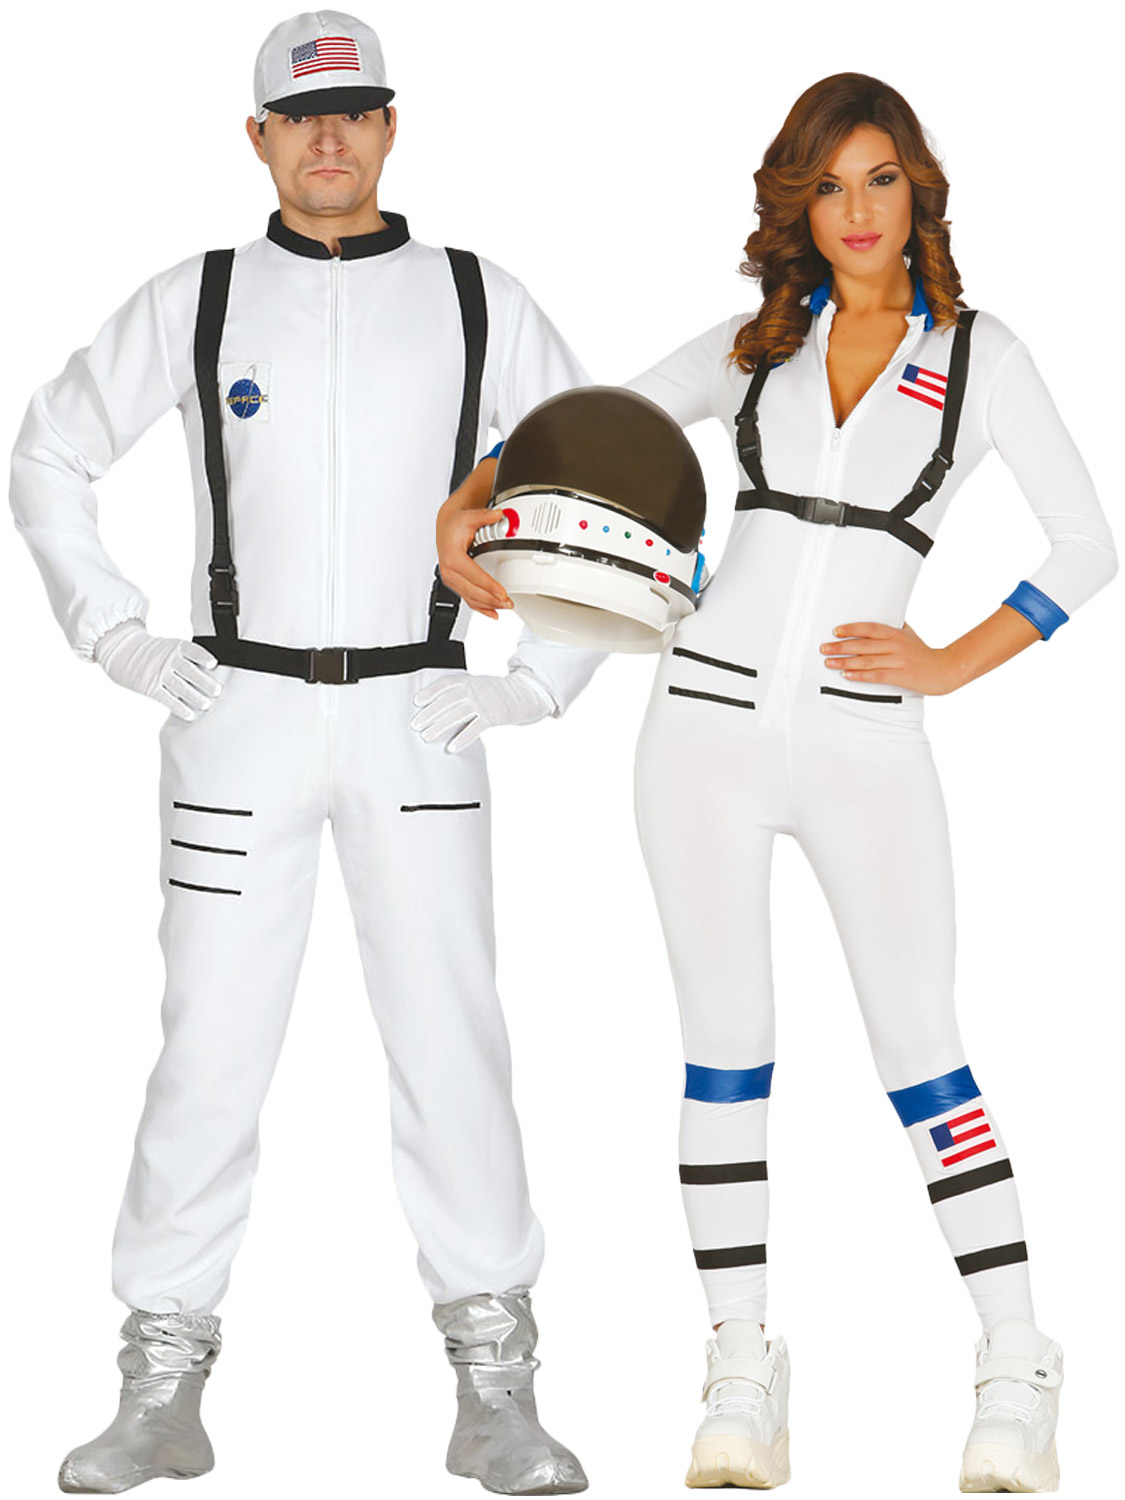 astronaut costume adult costumes - HD 1125×1500